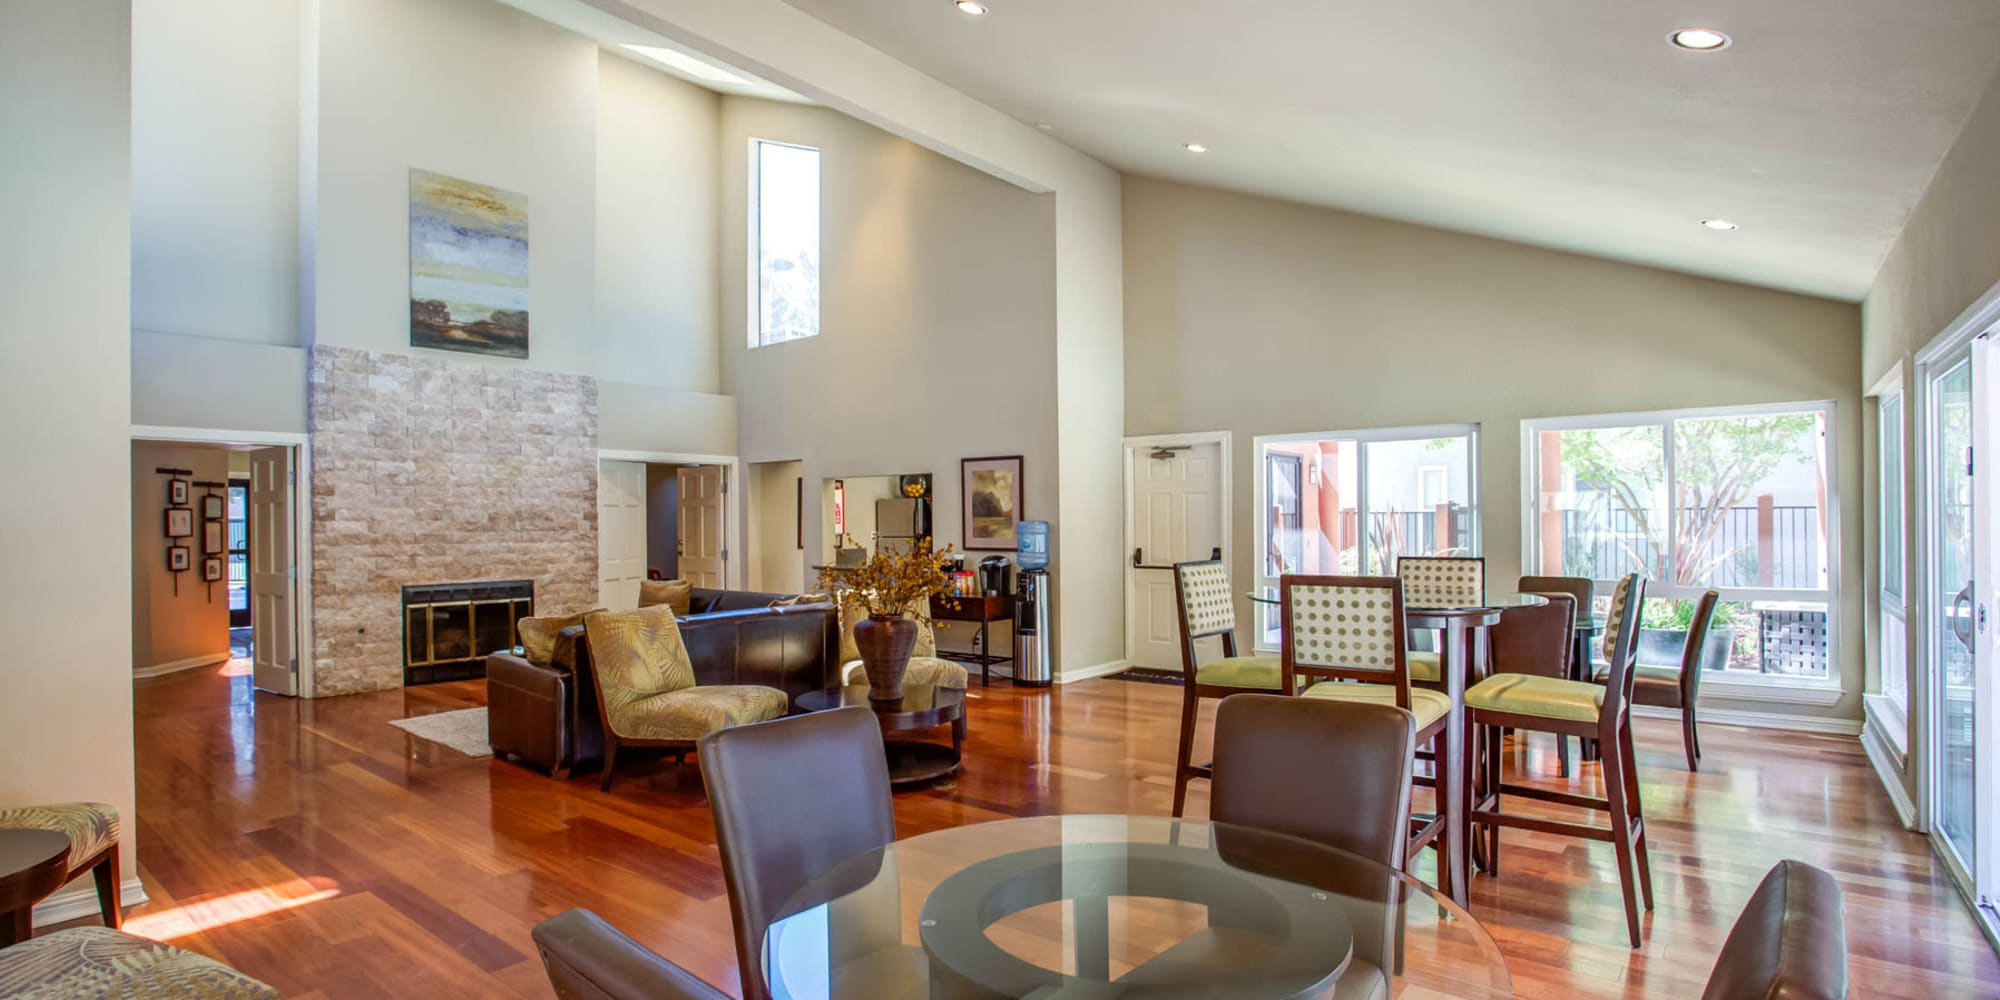 Bright and welcoming resident clubhouse interior at Valley Plaza Villages in Pleasanton, California